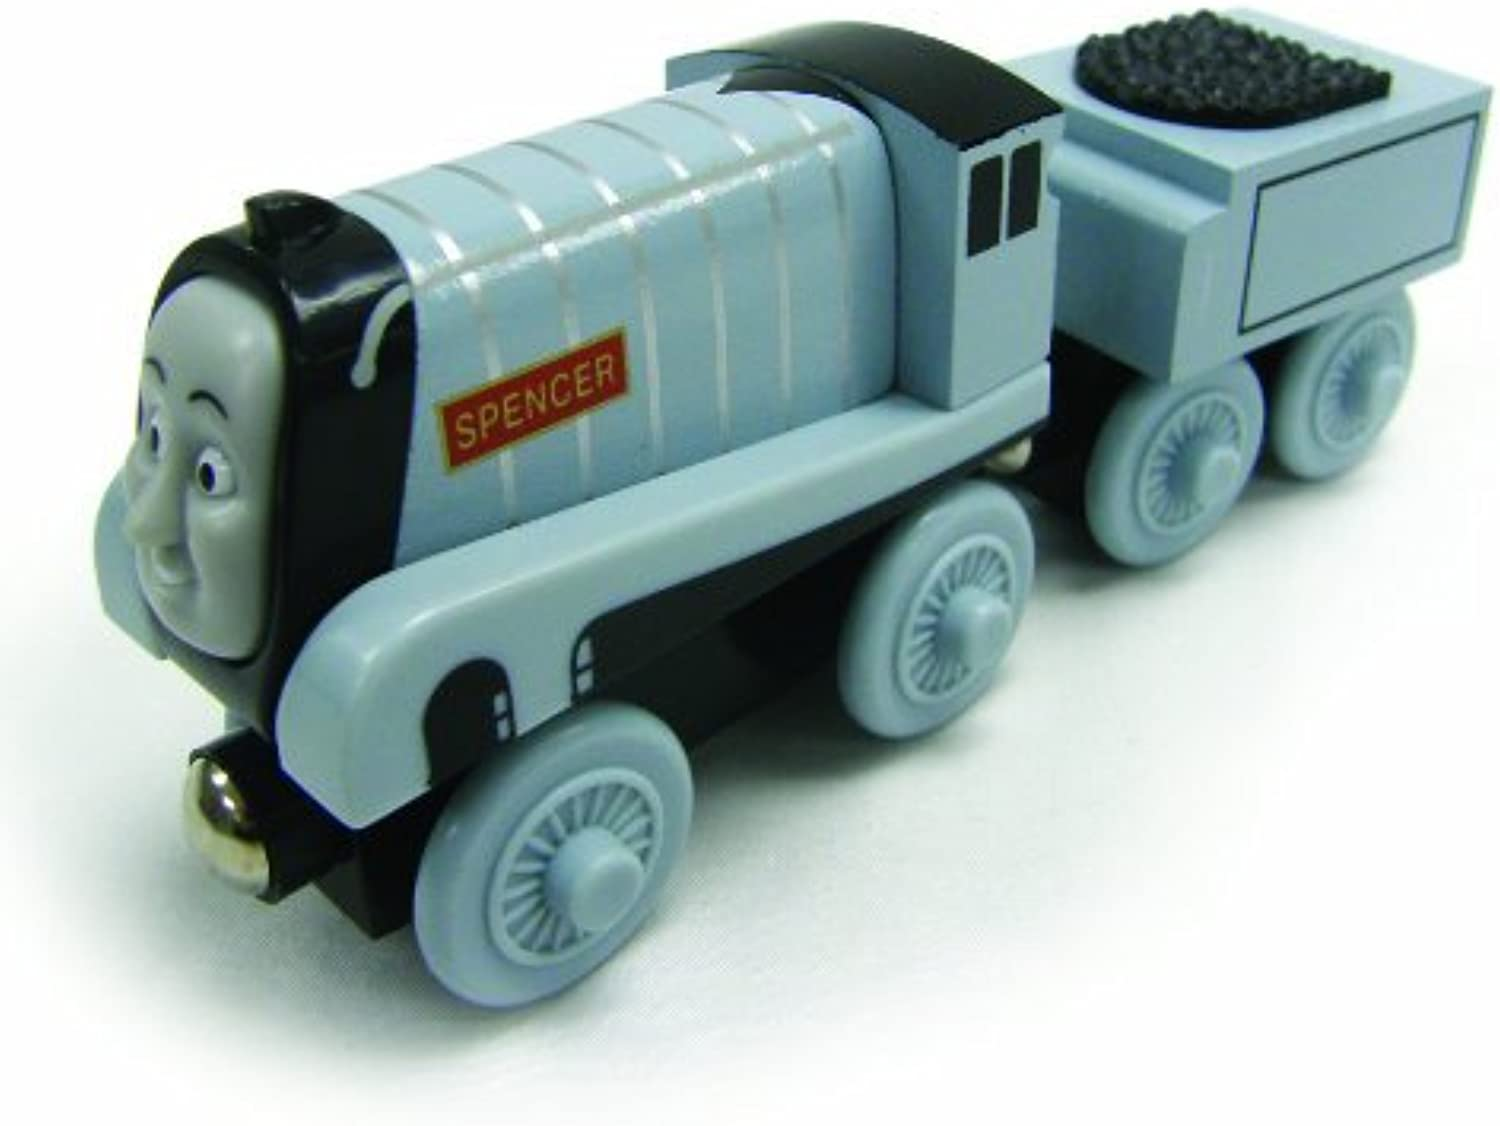 ¡No dudes! ¡Compra ahora! Thomas And Friends Wooden Railway - Early Early Early Engineers Spencer by Learning Curve  a la venta